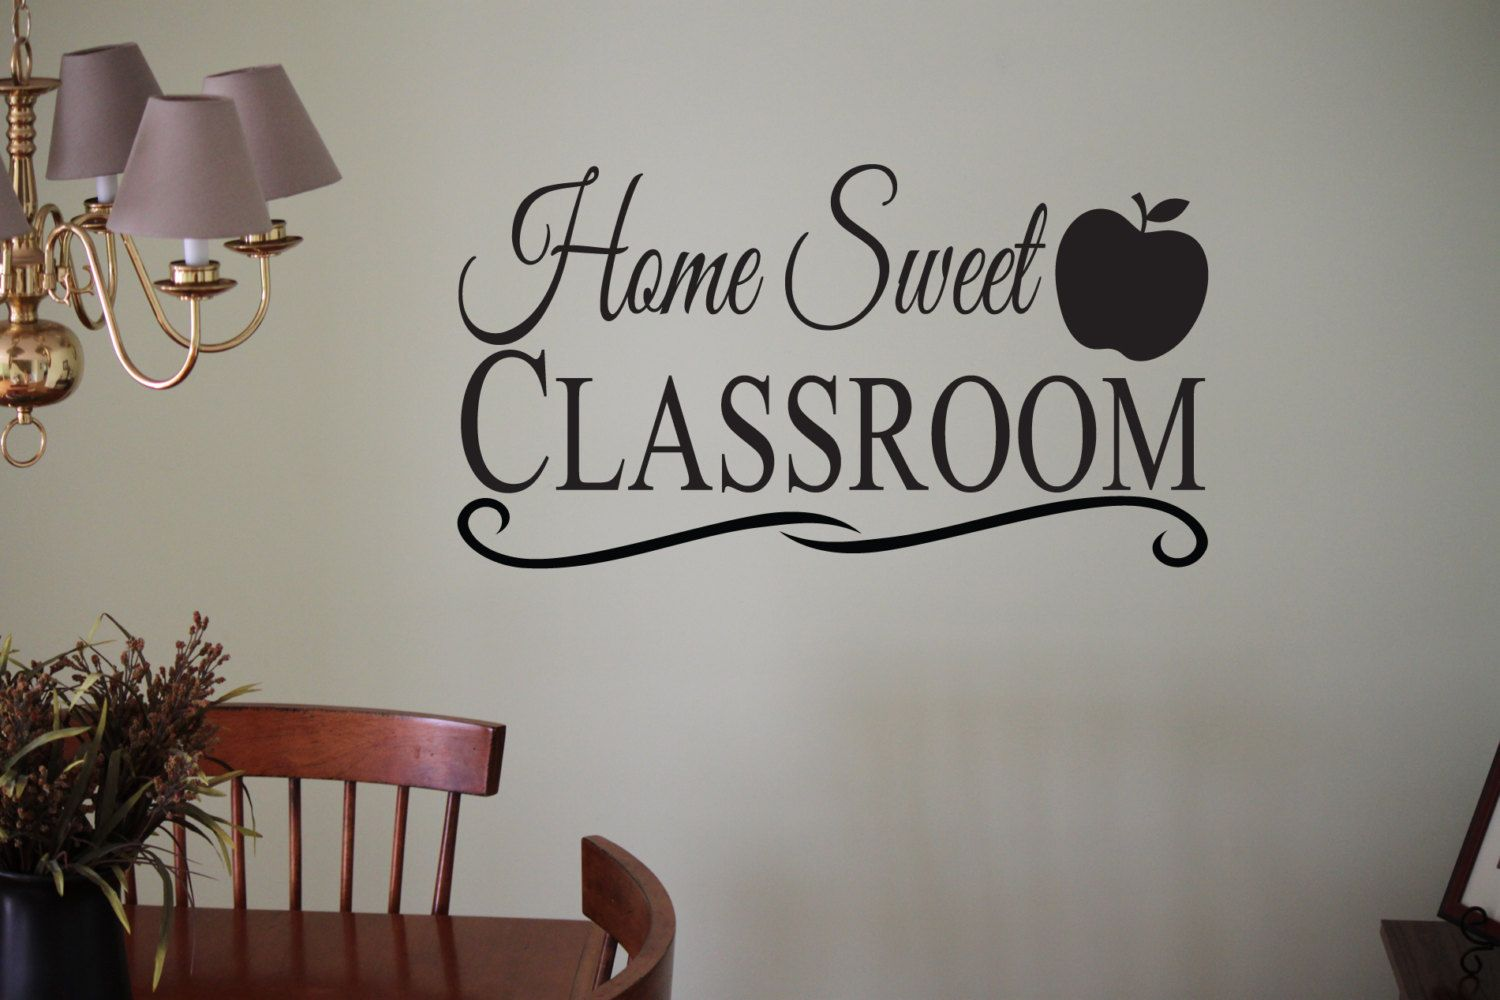 Wonderful Home Sweet Classroom Vinyl Wall Decal Sticker By ScriptitVinyl, $15.00